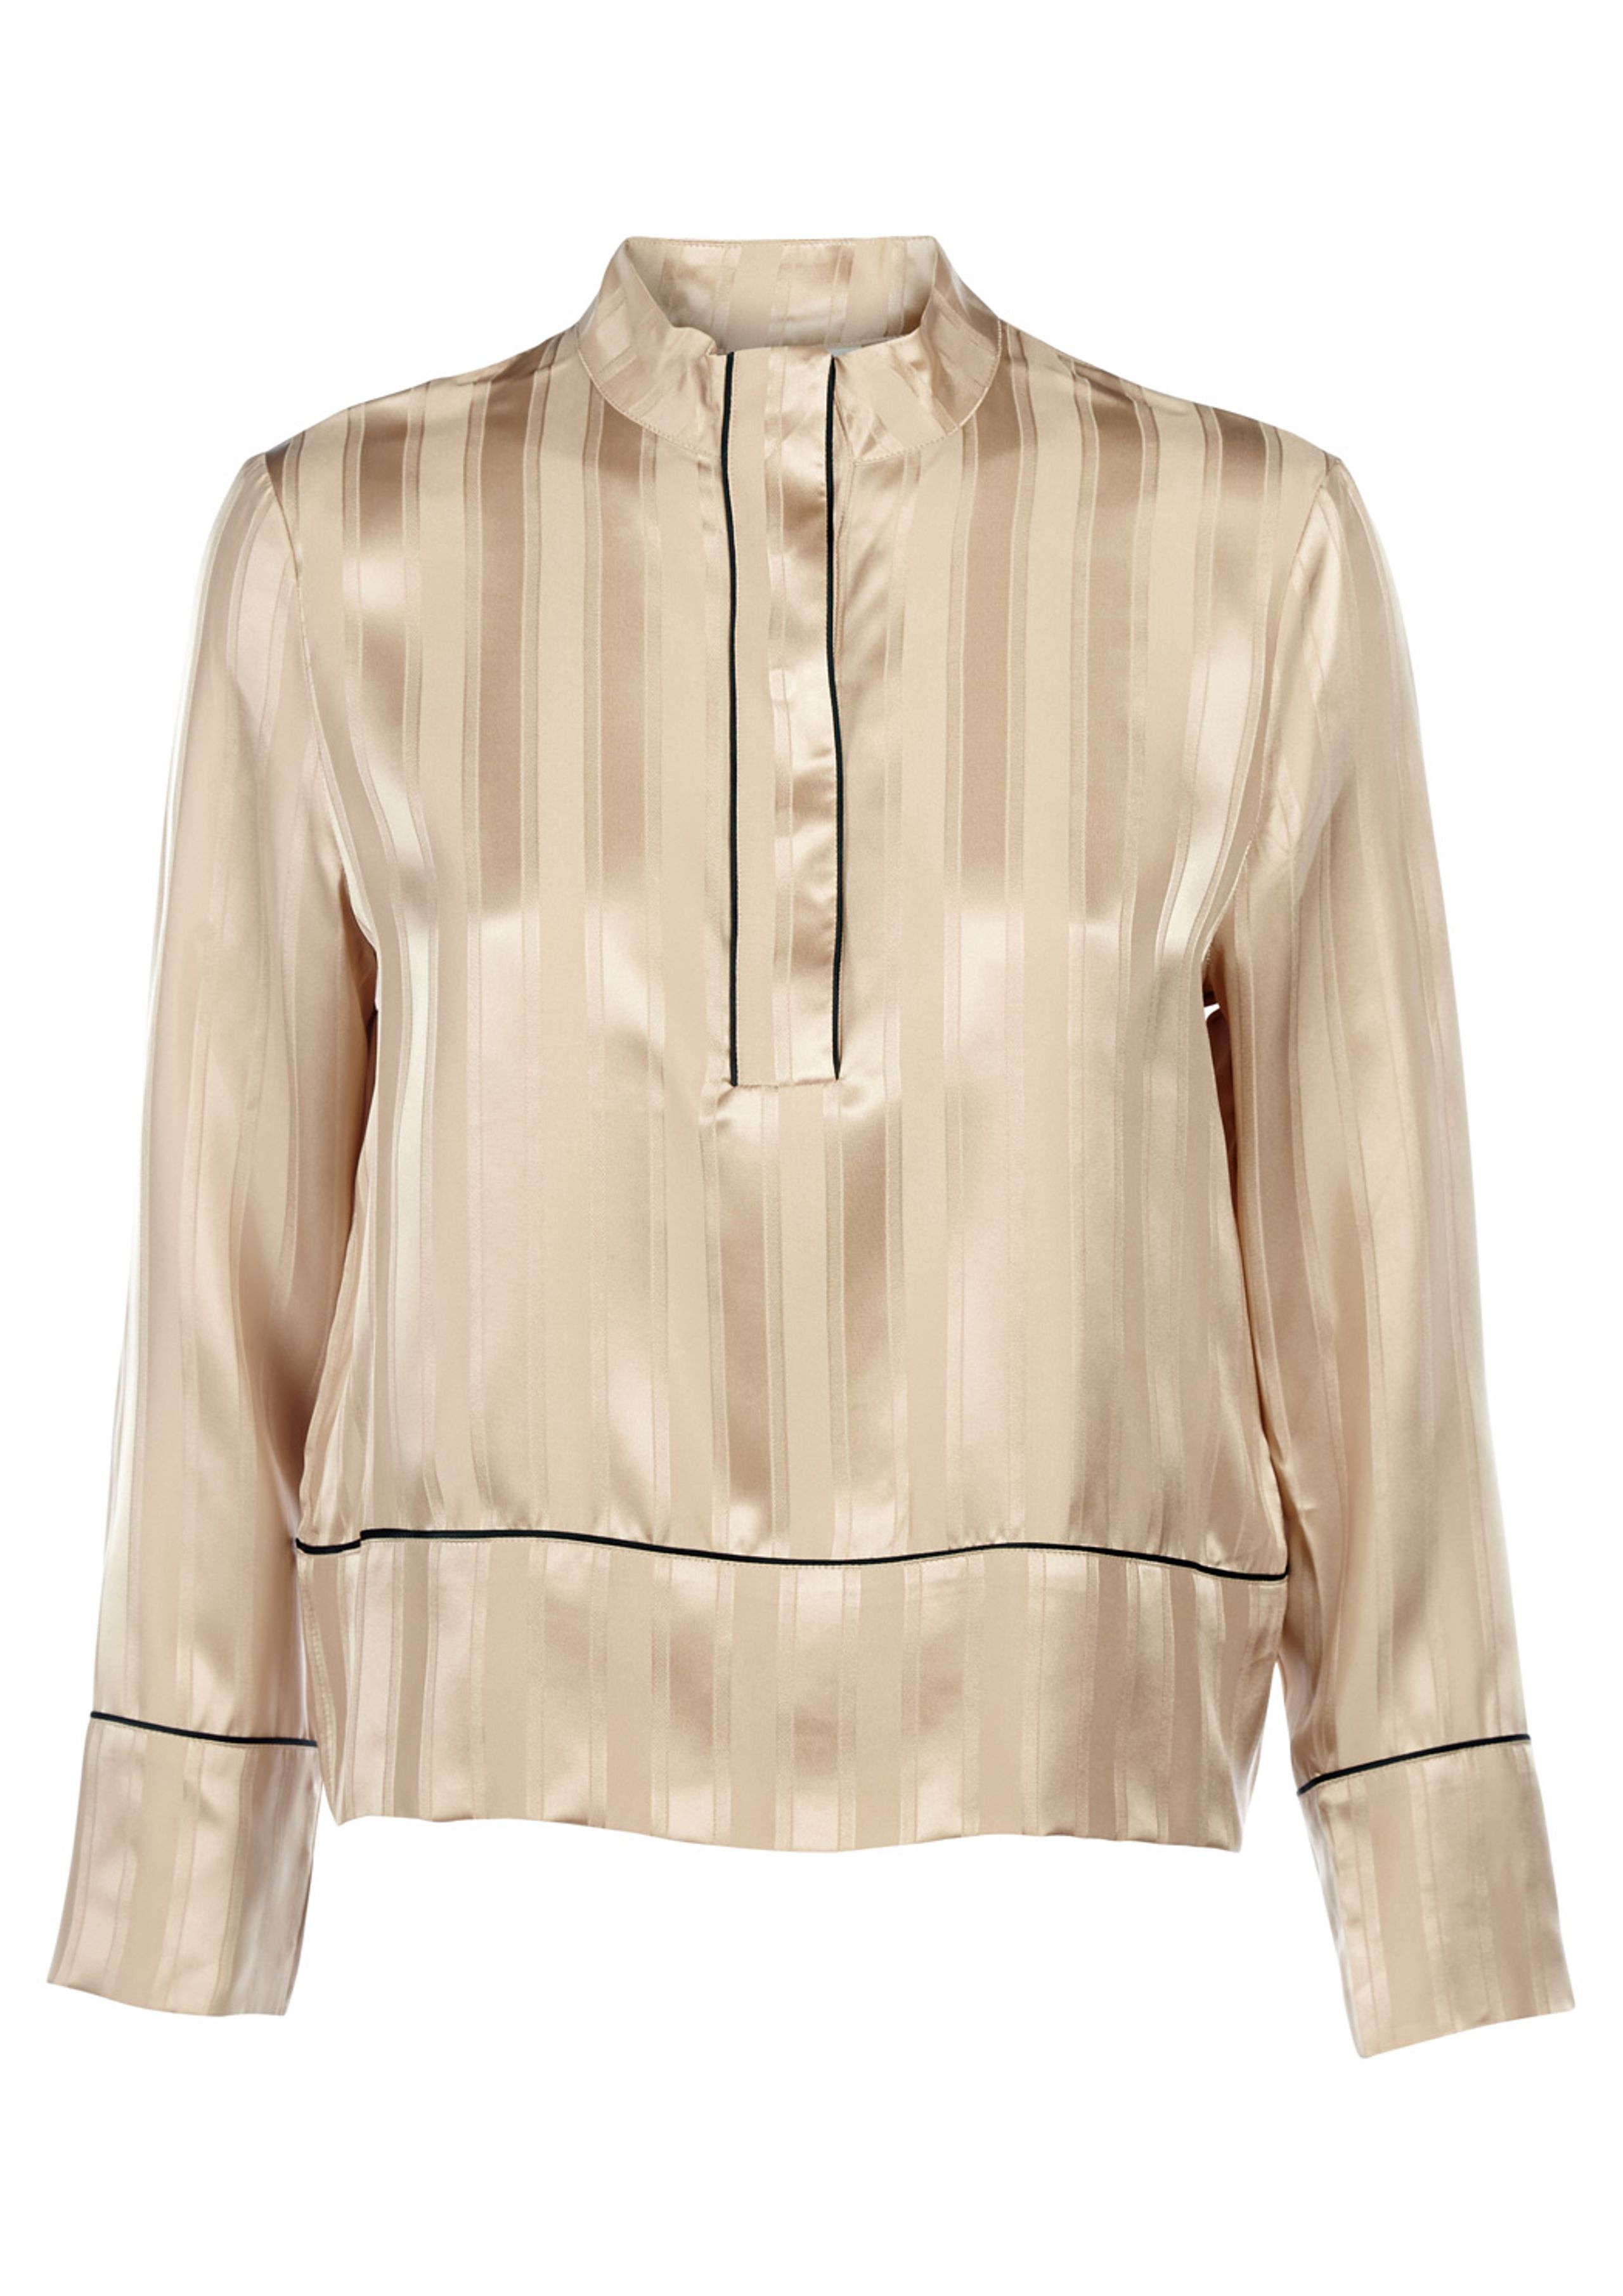 Kendals silk blouse